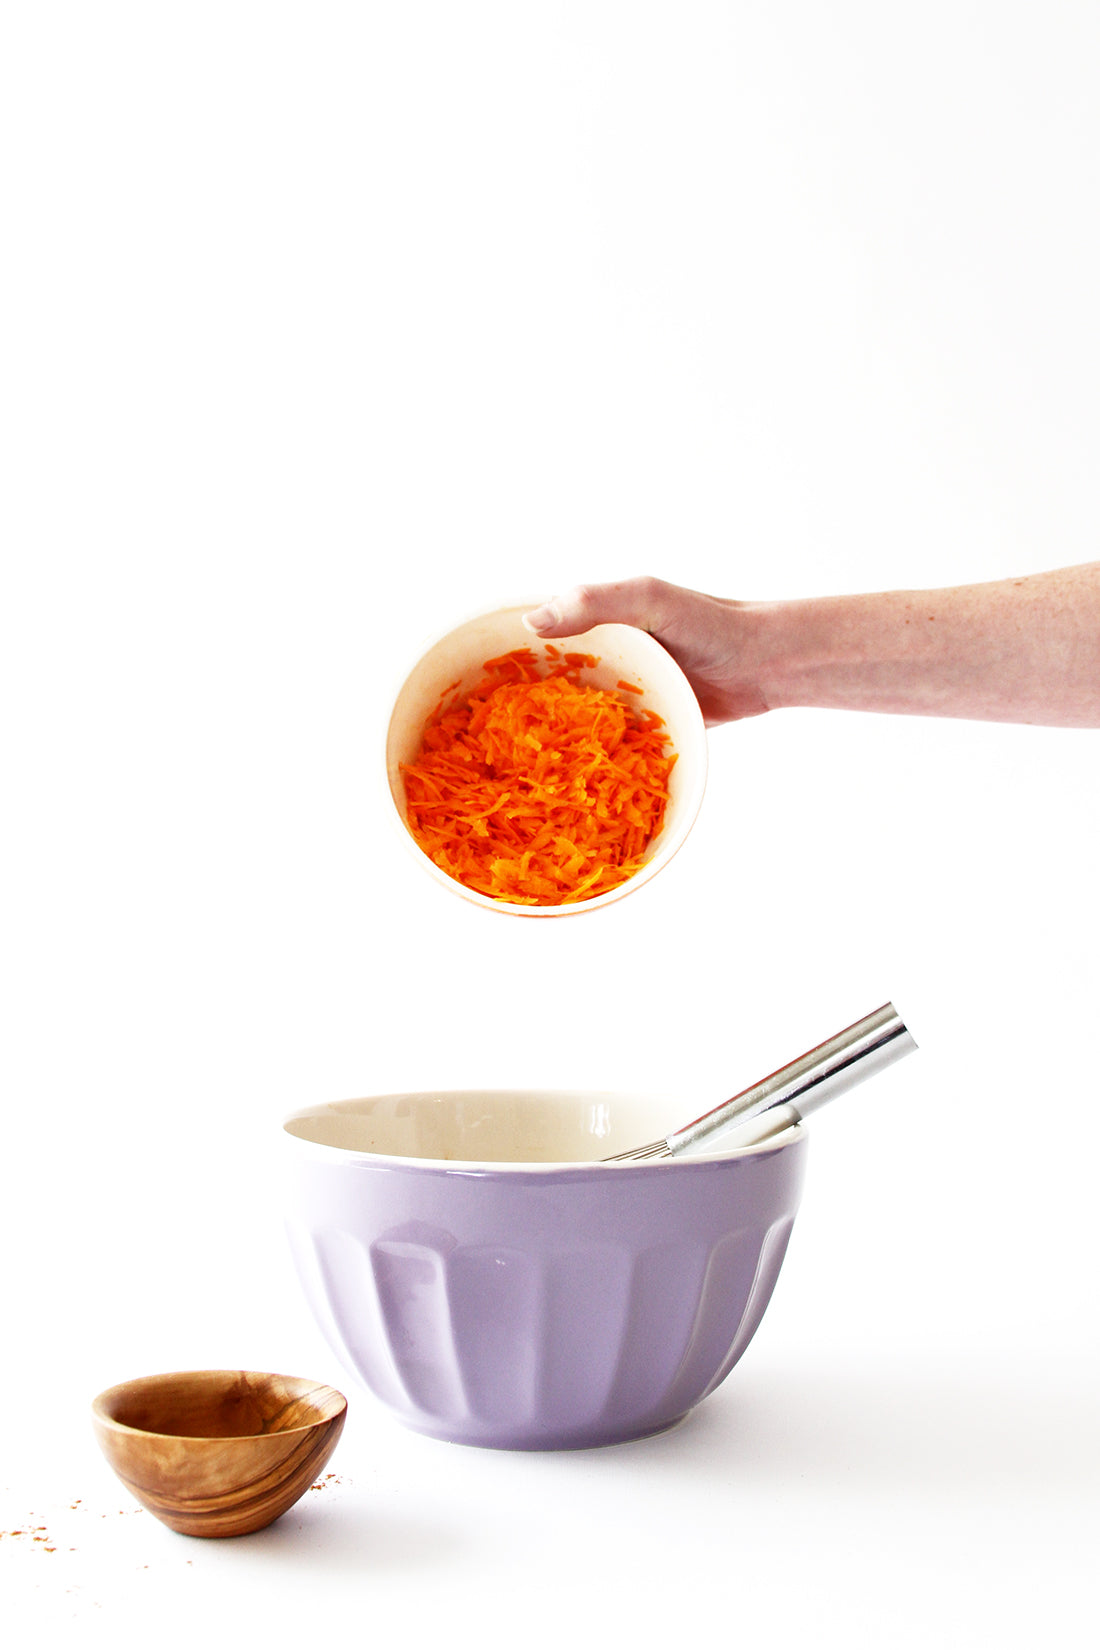 Image of shredded carrots being poured into a purple mixing bowl for Miss Jones Baking Co Carrot Spice Cake recipe